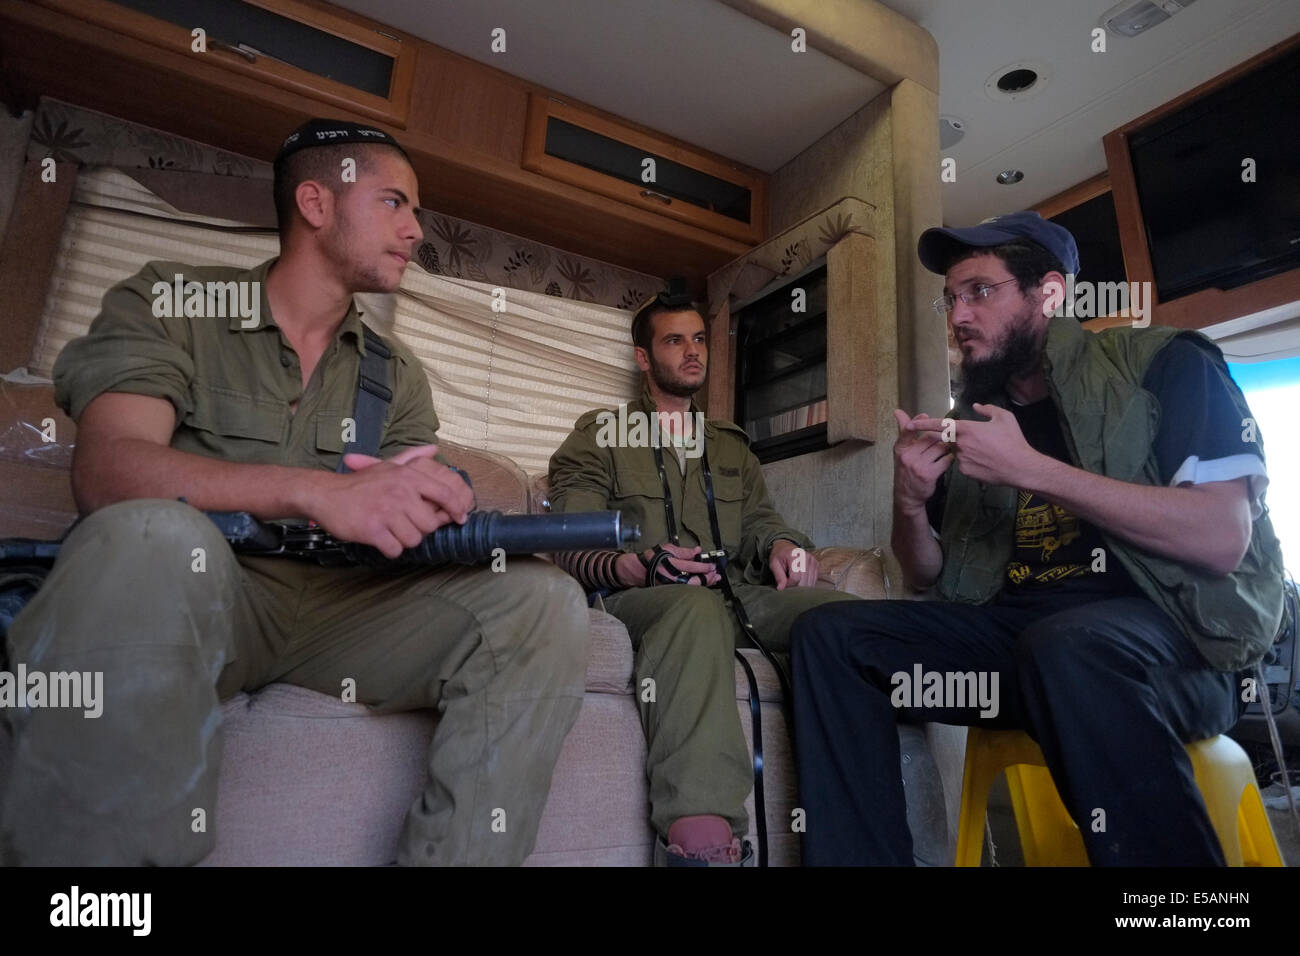 A member of Habad  religious movement giving a religious speech to Israeli soldiers in a 'Mitzva Tank' van - Stock Image